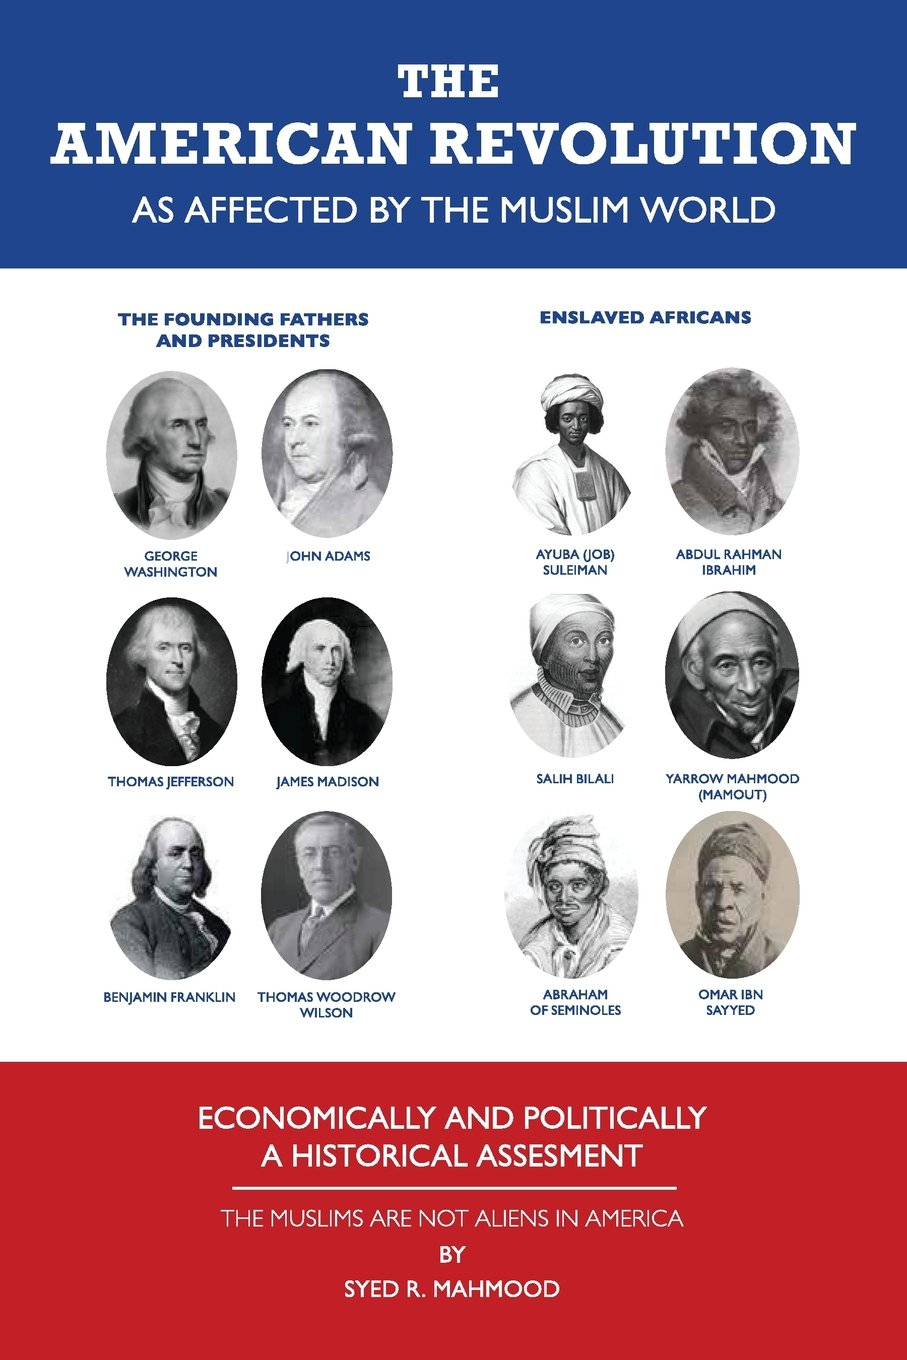 Download The American Revolution as Affected by the Muslim World - Economically and Politically - A Historical Assesment pdf